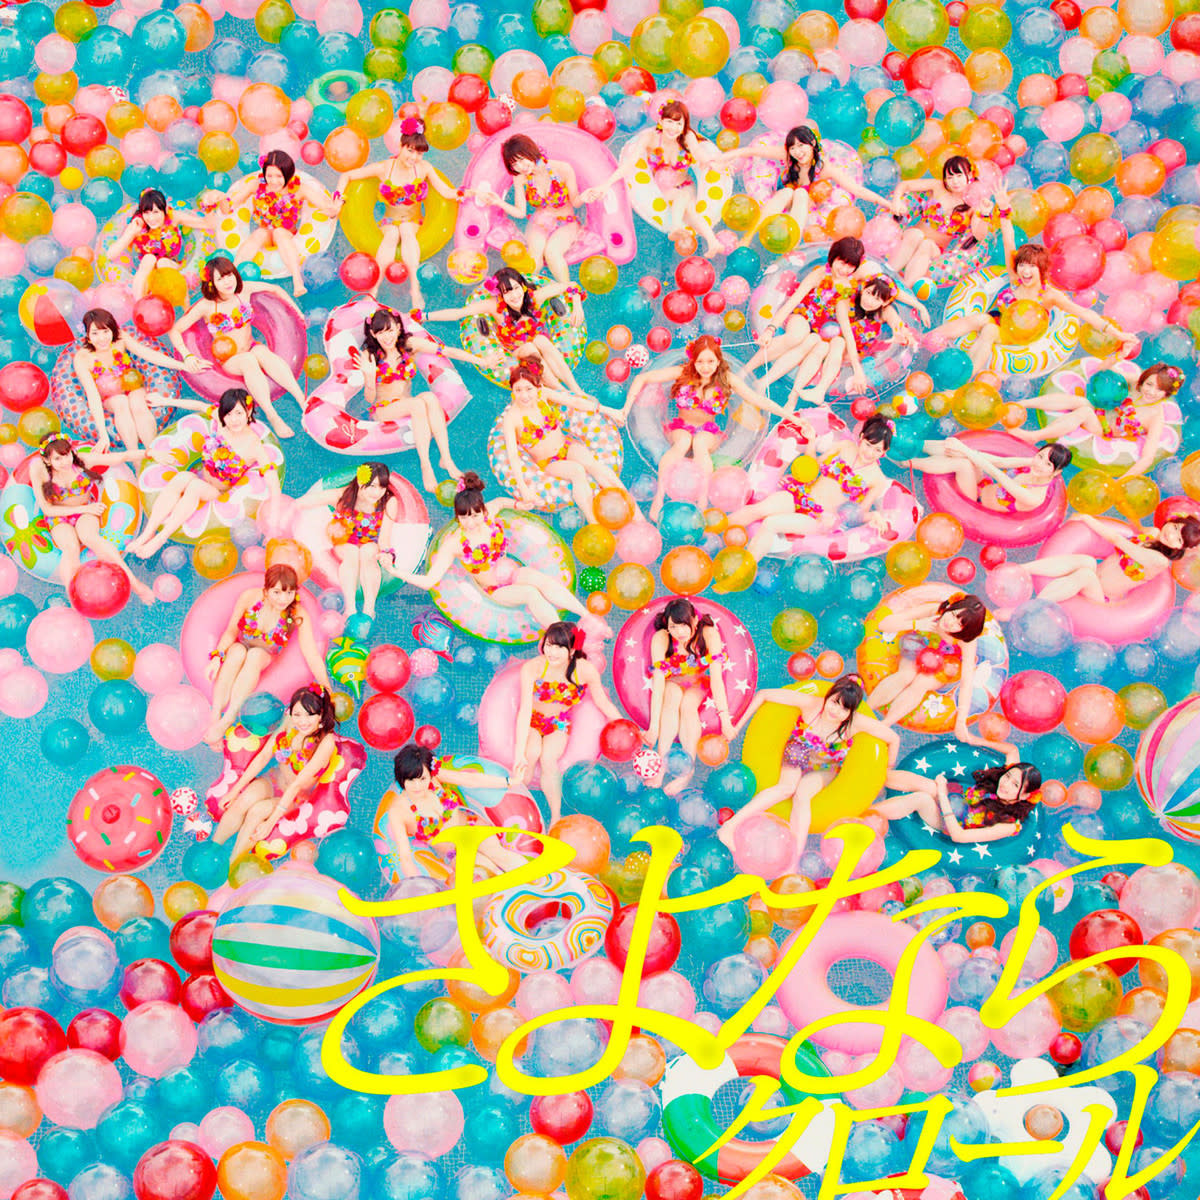 The CD cover for Sayonara Crawl shows the AKB48 girls having a great time while sitting on balloons!